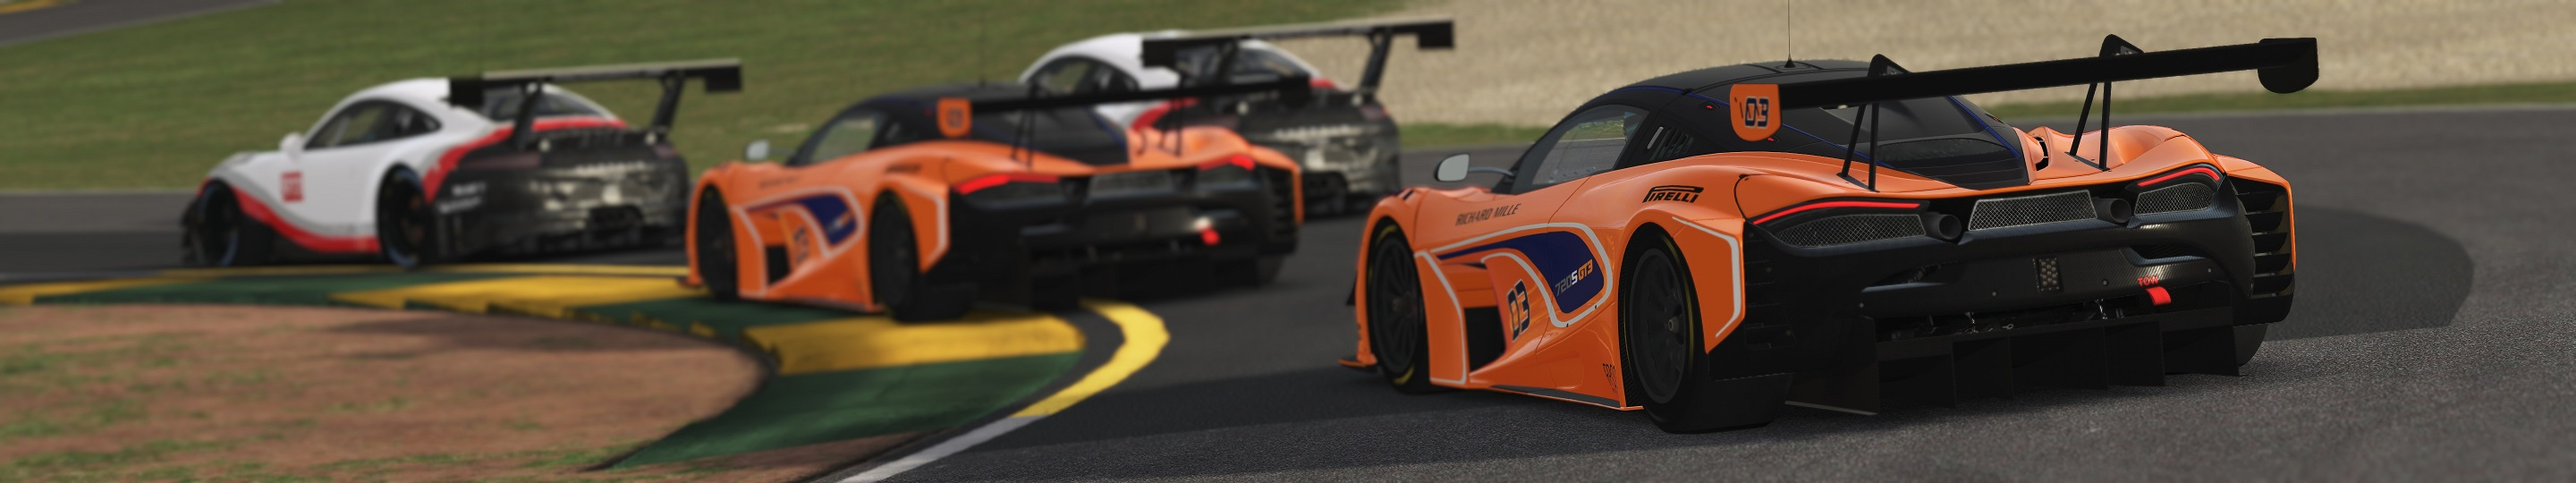 GT3 Challenges Pack Released for rFactor 2 | RaceDepartment - Latest